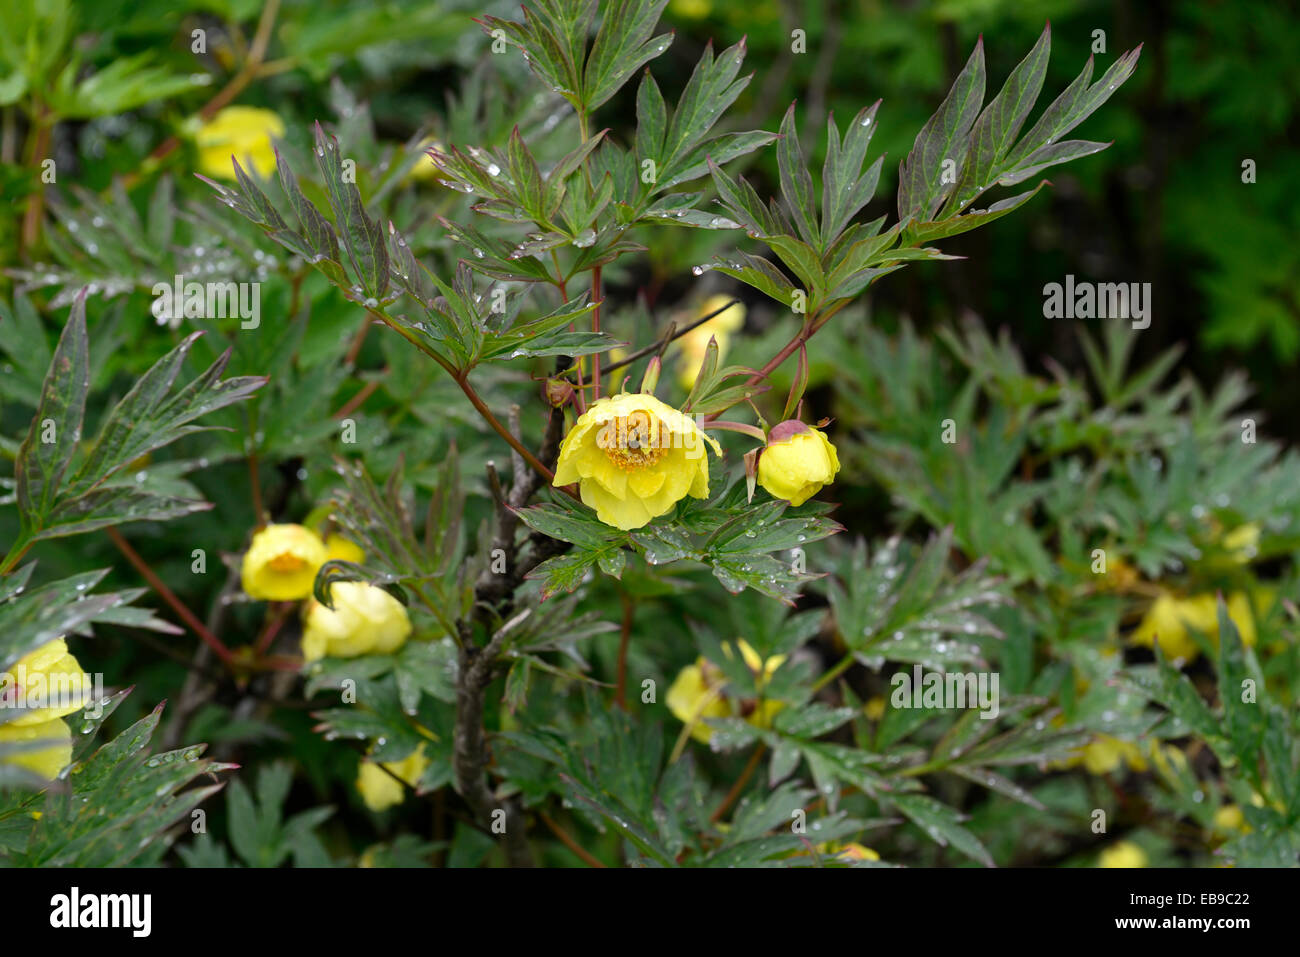 Yellow tree peony stock photos yellow tree peony stock images alamy paeonia potaninii yellow flowers tree peony peonies scented summer flower flowering bloom blooming rm floral mightylinksfo Image collections